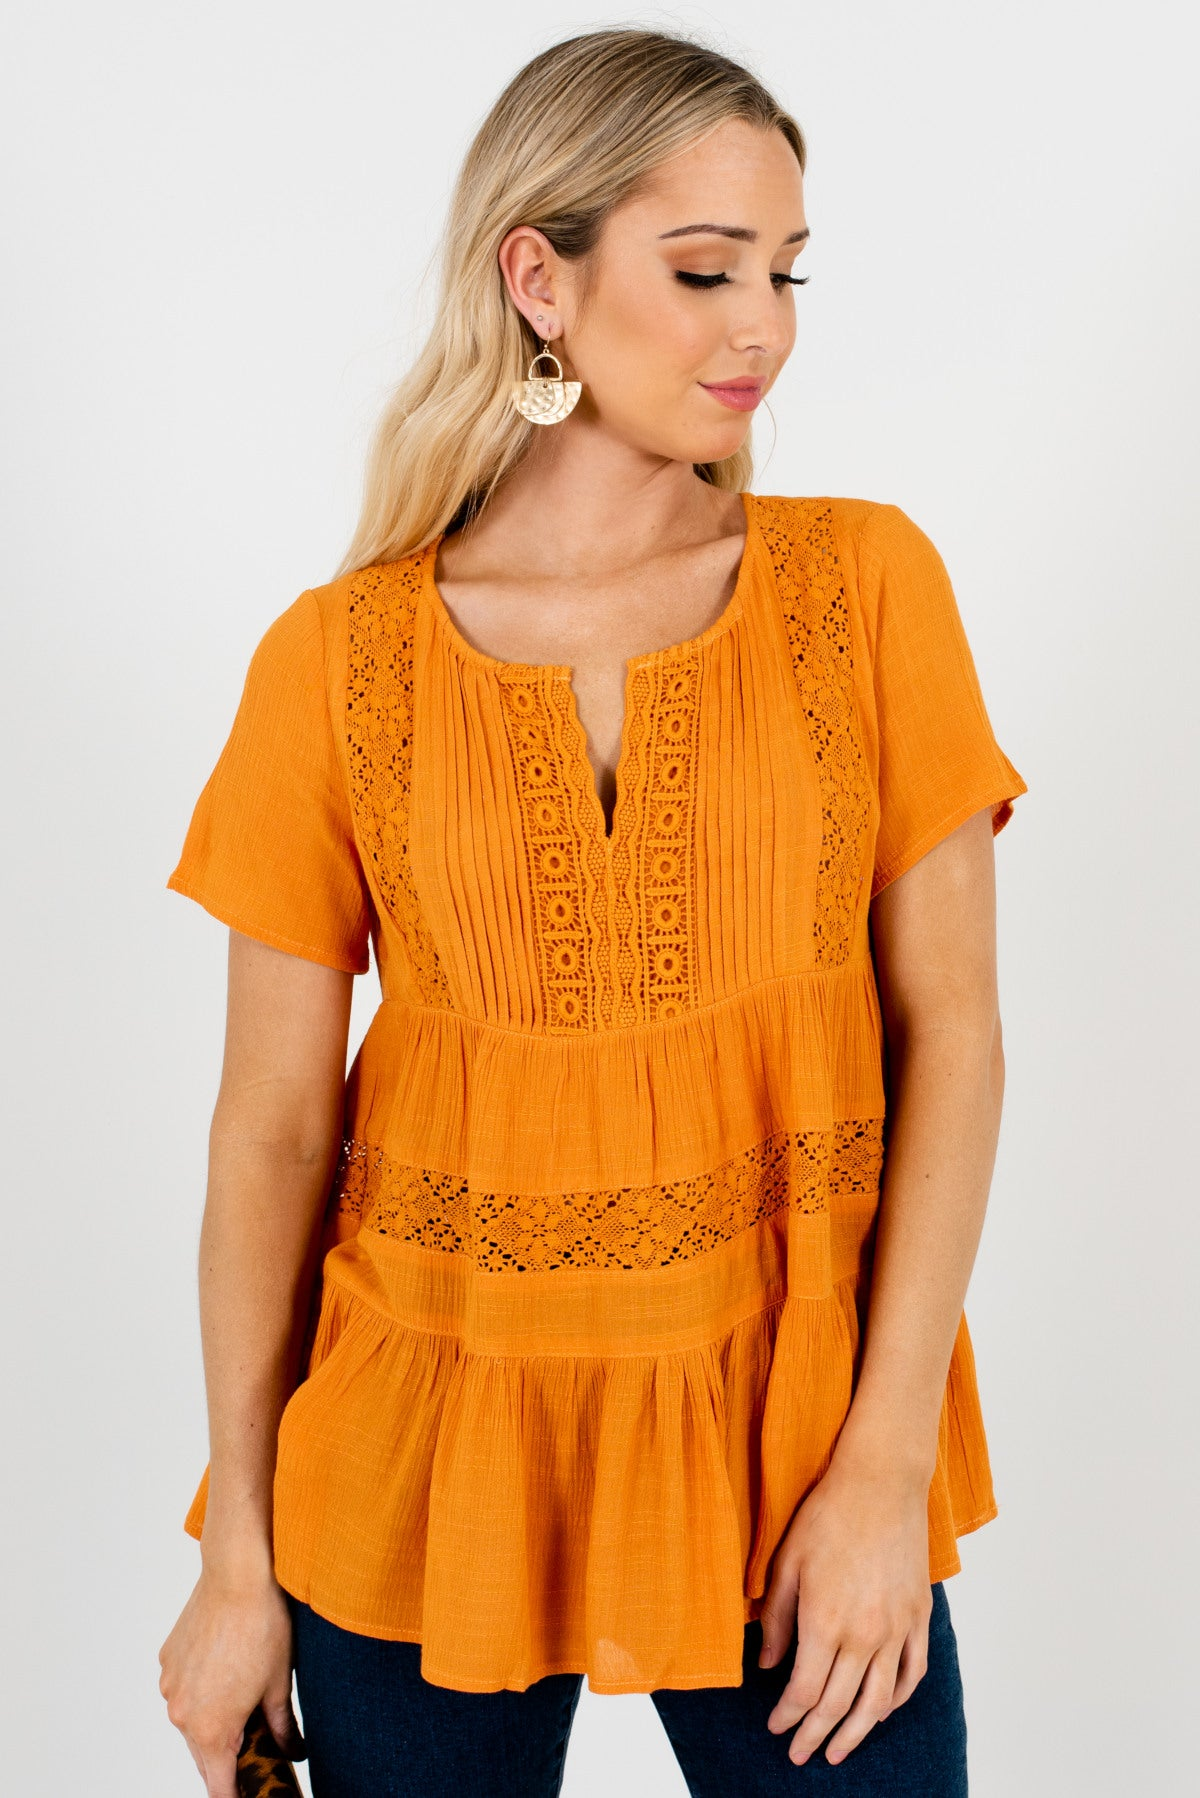 Orange Tiered Ruffled Style Boutique Tops for Women